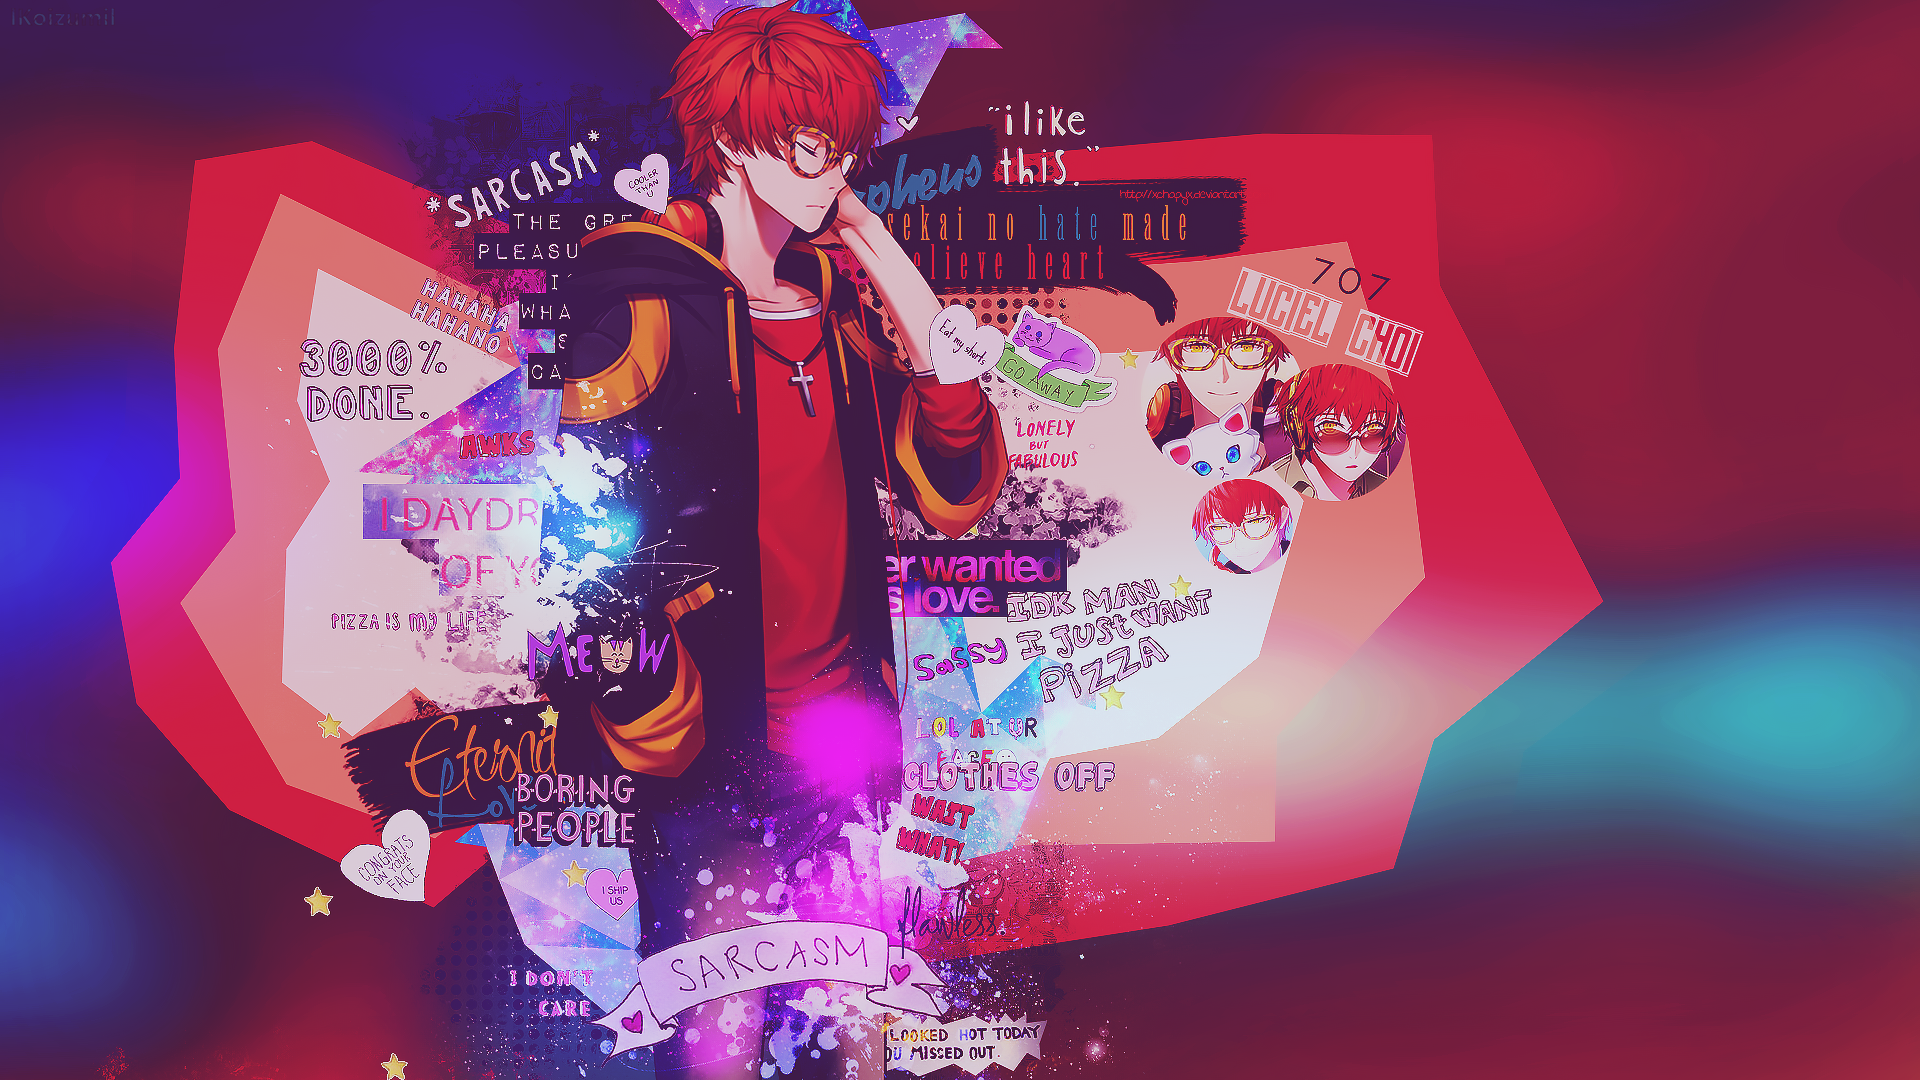 Wallpaper Luciel Choi 707 Mystic Messenger By Lkoizumil On Deviantart Mystic Messenger 707 Mystic Messenger Anime